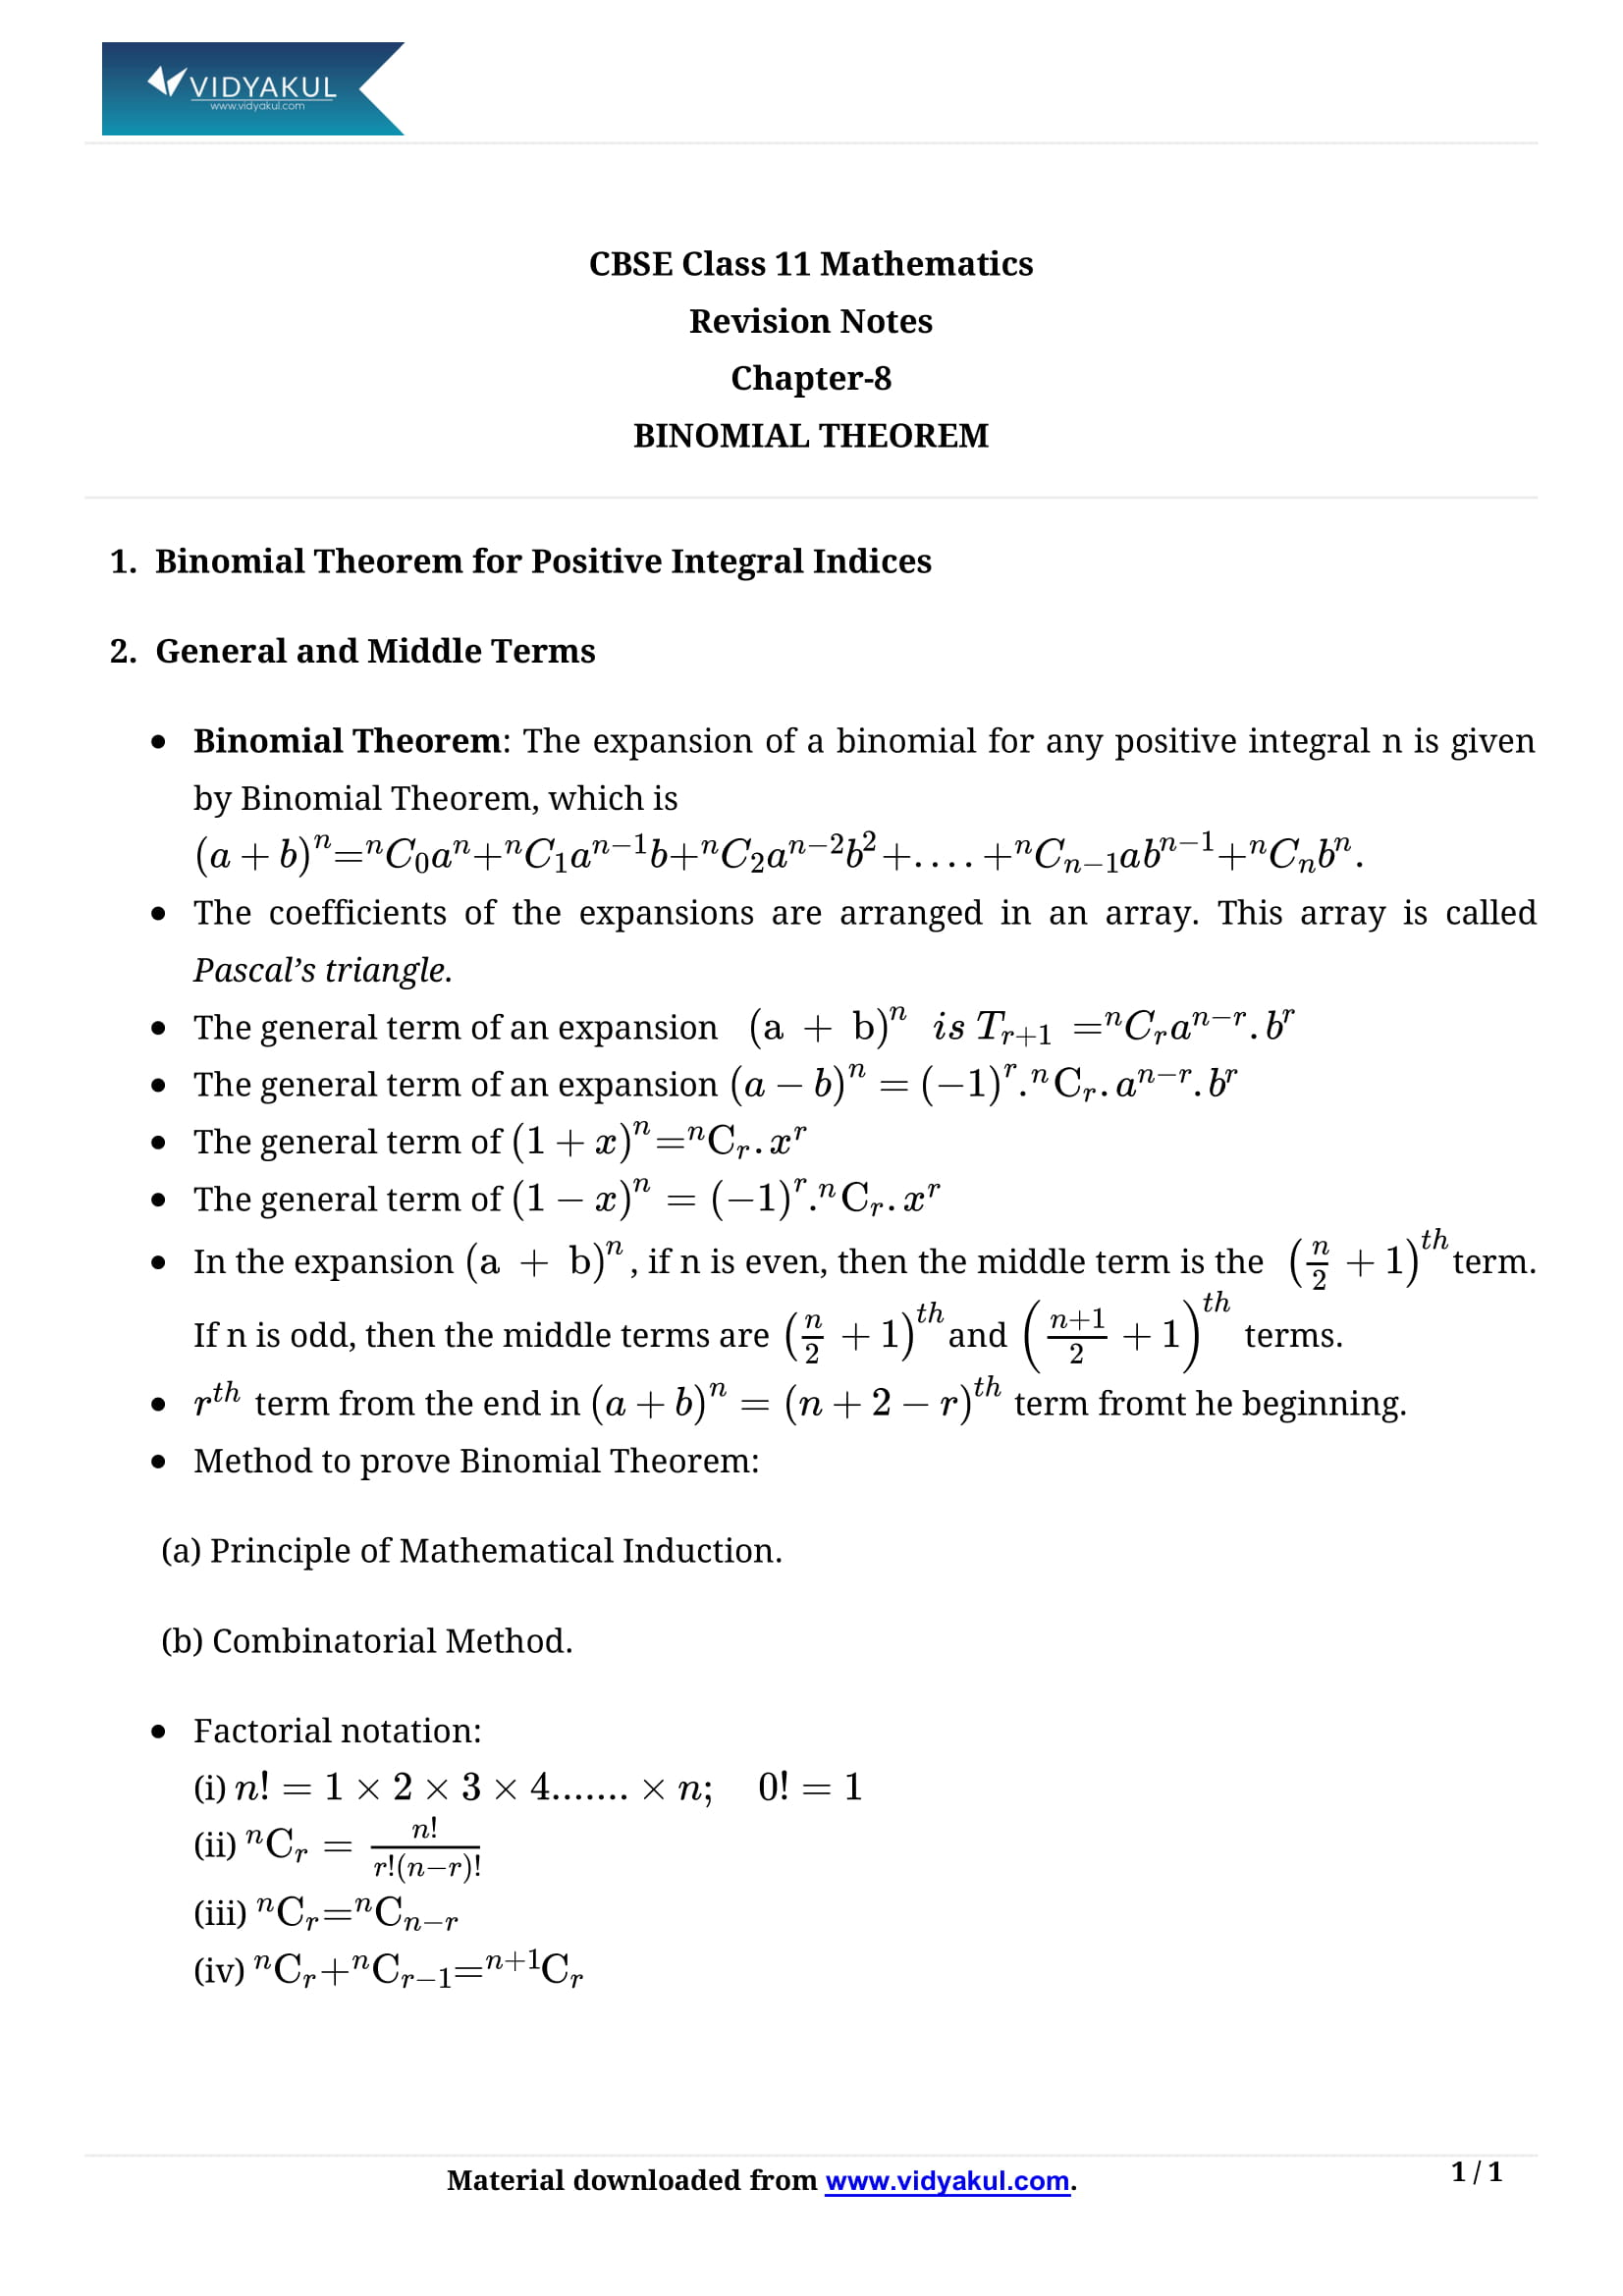 Worksheet Binomial Theorem Worksheet binomial theorem class 11 formulas notes vidyakul